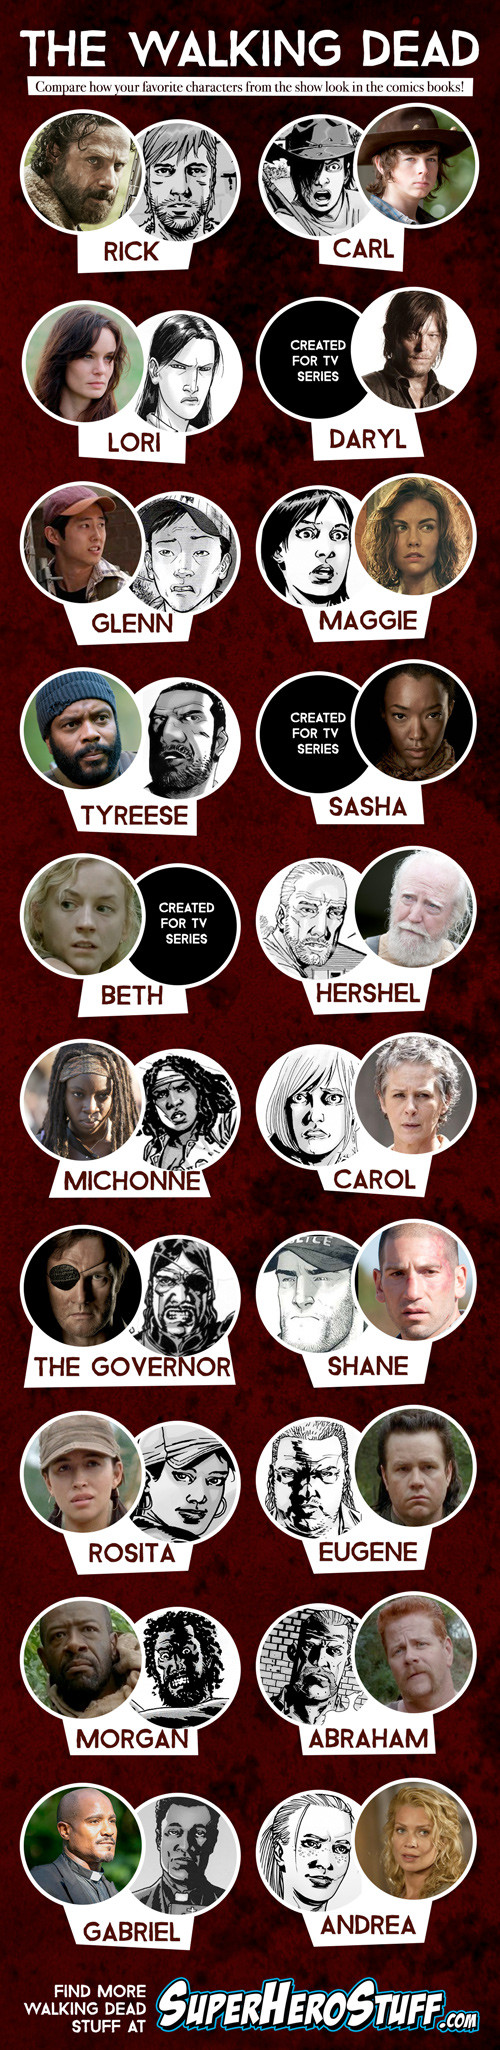 book of the dead cast